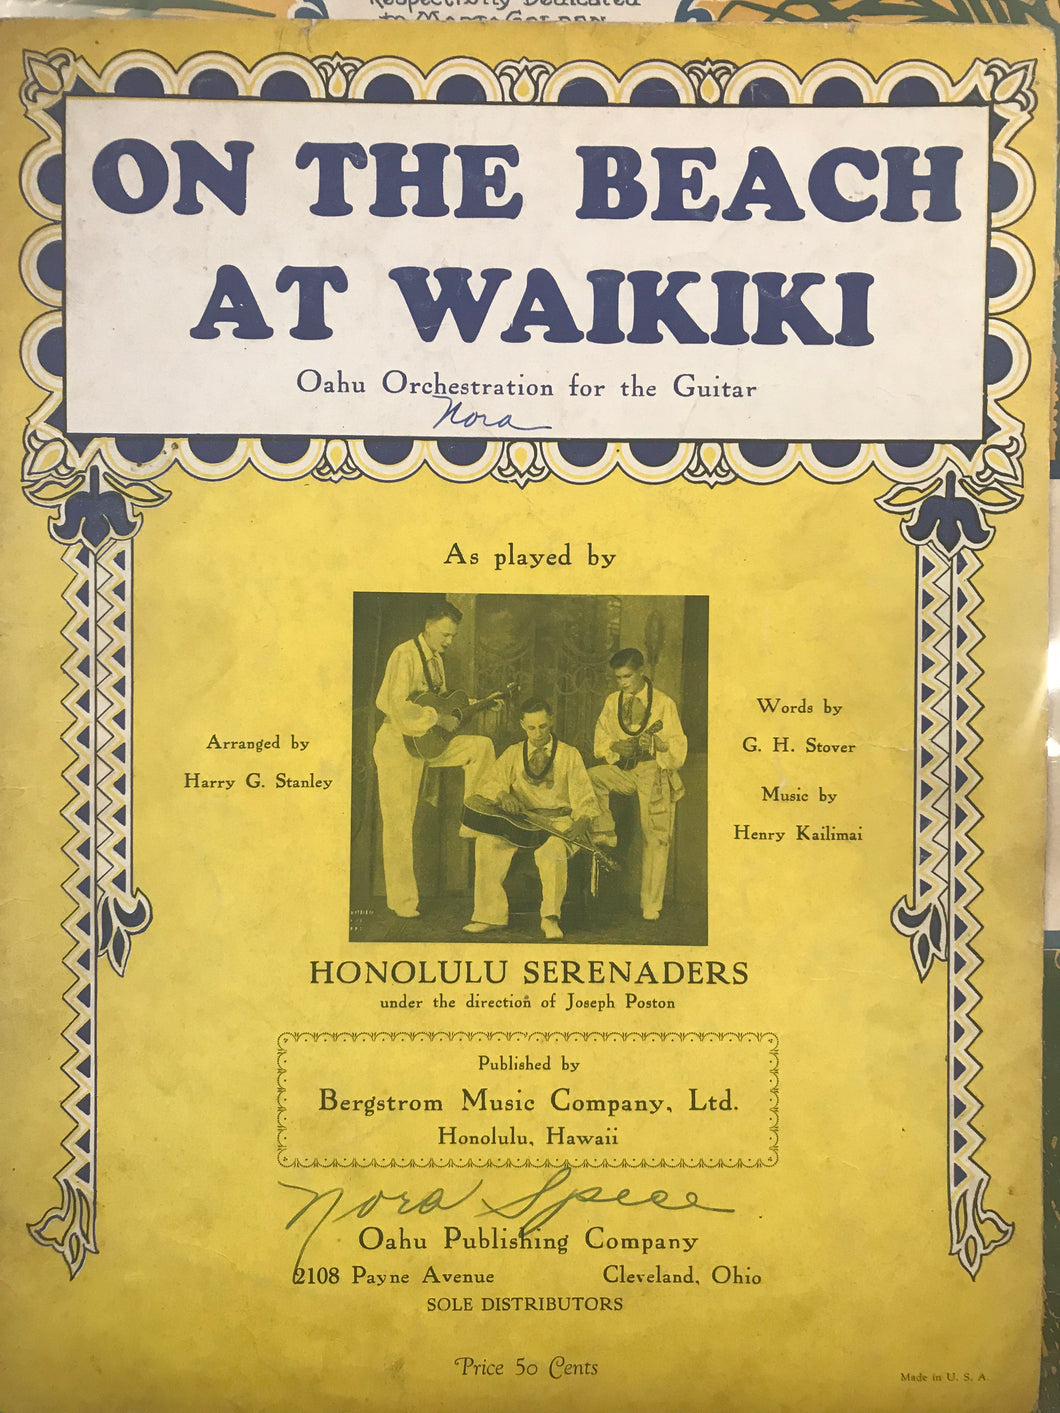 Hawaiian Sheet Music: 'On The Beach At Waikiki'